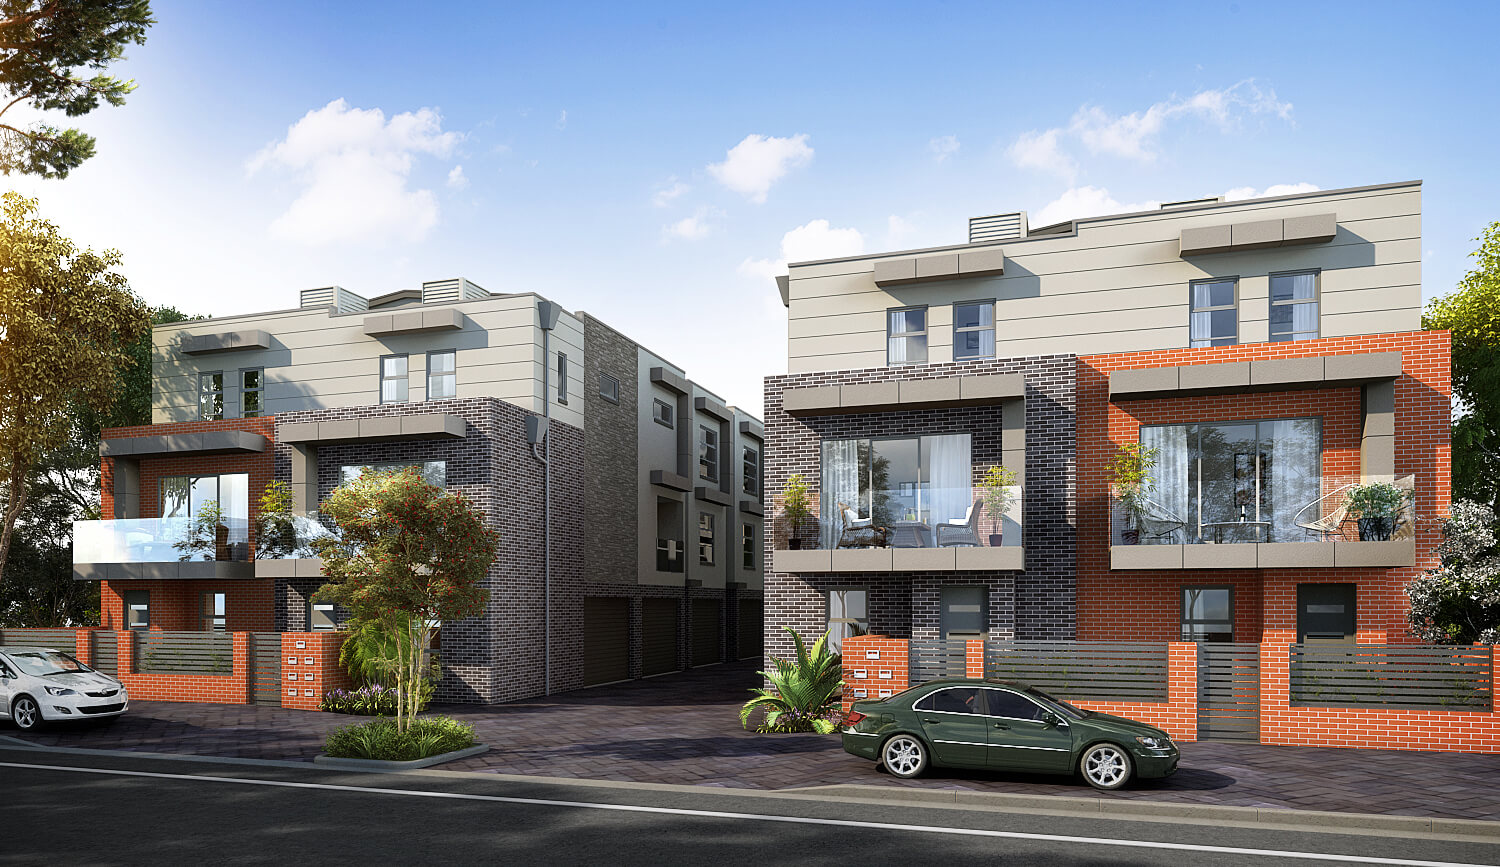 Magnificent 3 and 4 bedroom Prospect townhouses from $459,000